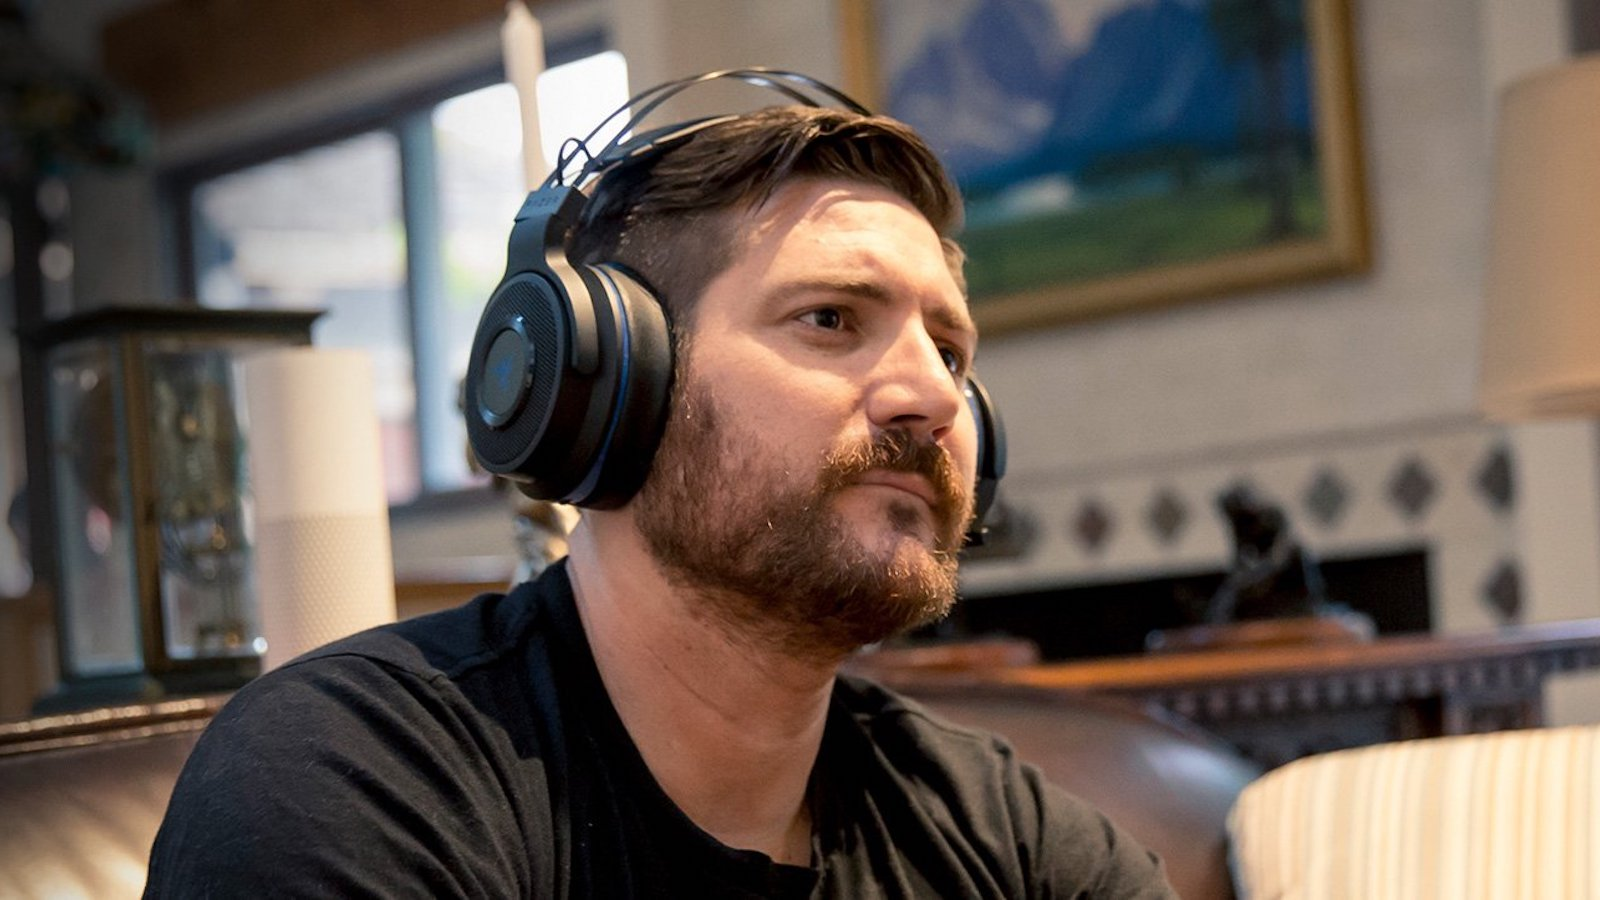 Razer Thresher Ultimate PS4 Headset Dolby headphones ensure a lag-free connection